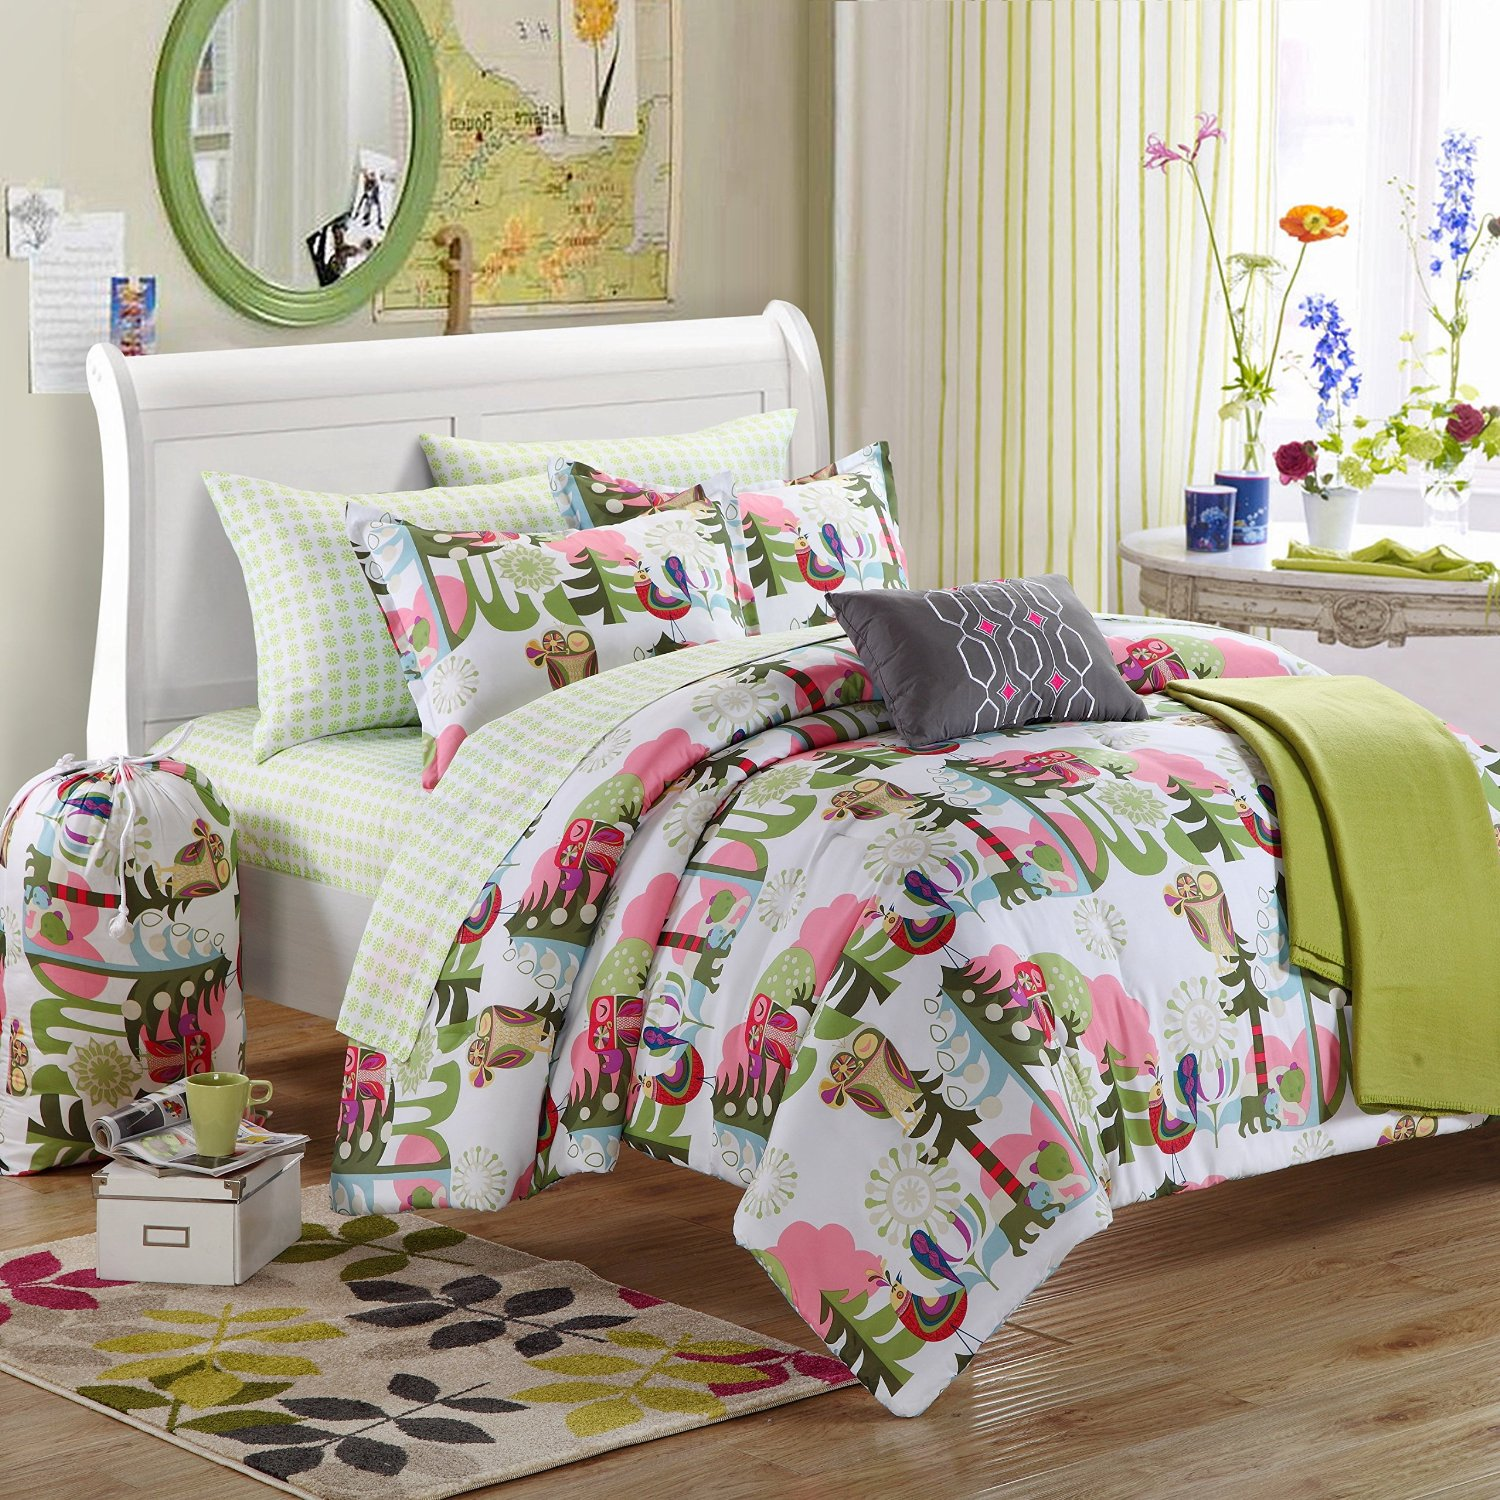 Livable Bedroom Design With Cheerful Decoration And White Pink Green Owl  Bedding Sheet And Wooden Floor